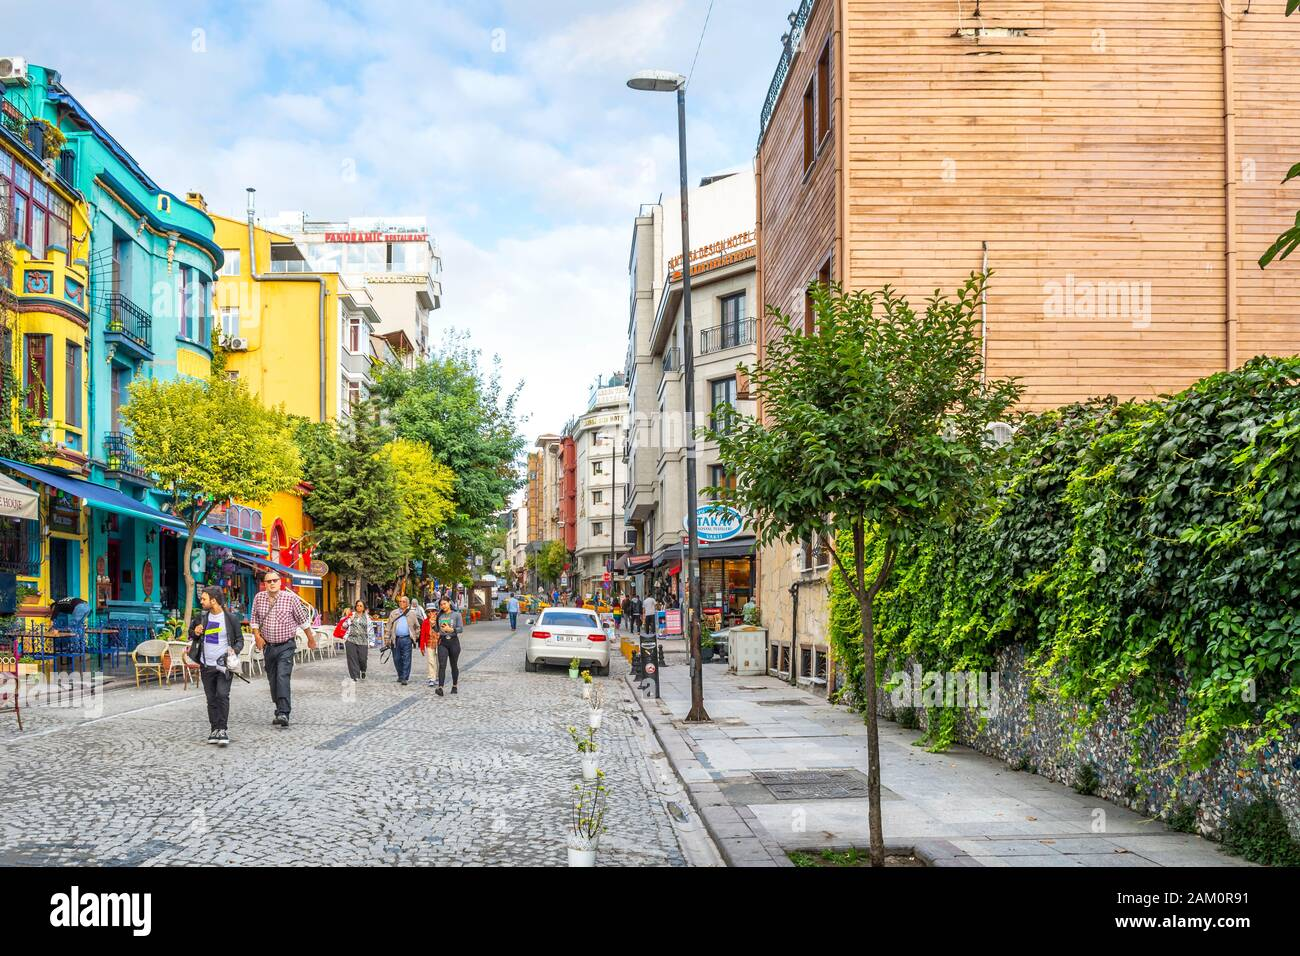 A street full of colorful shops and cafes in the historic Sultanahmet district of Istanbul, Turkey. Stock Photo